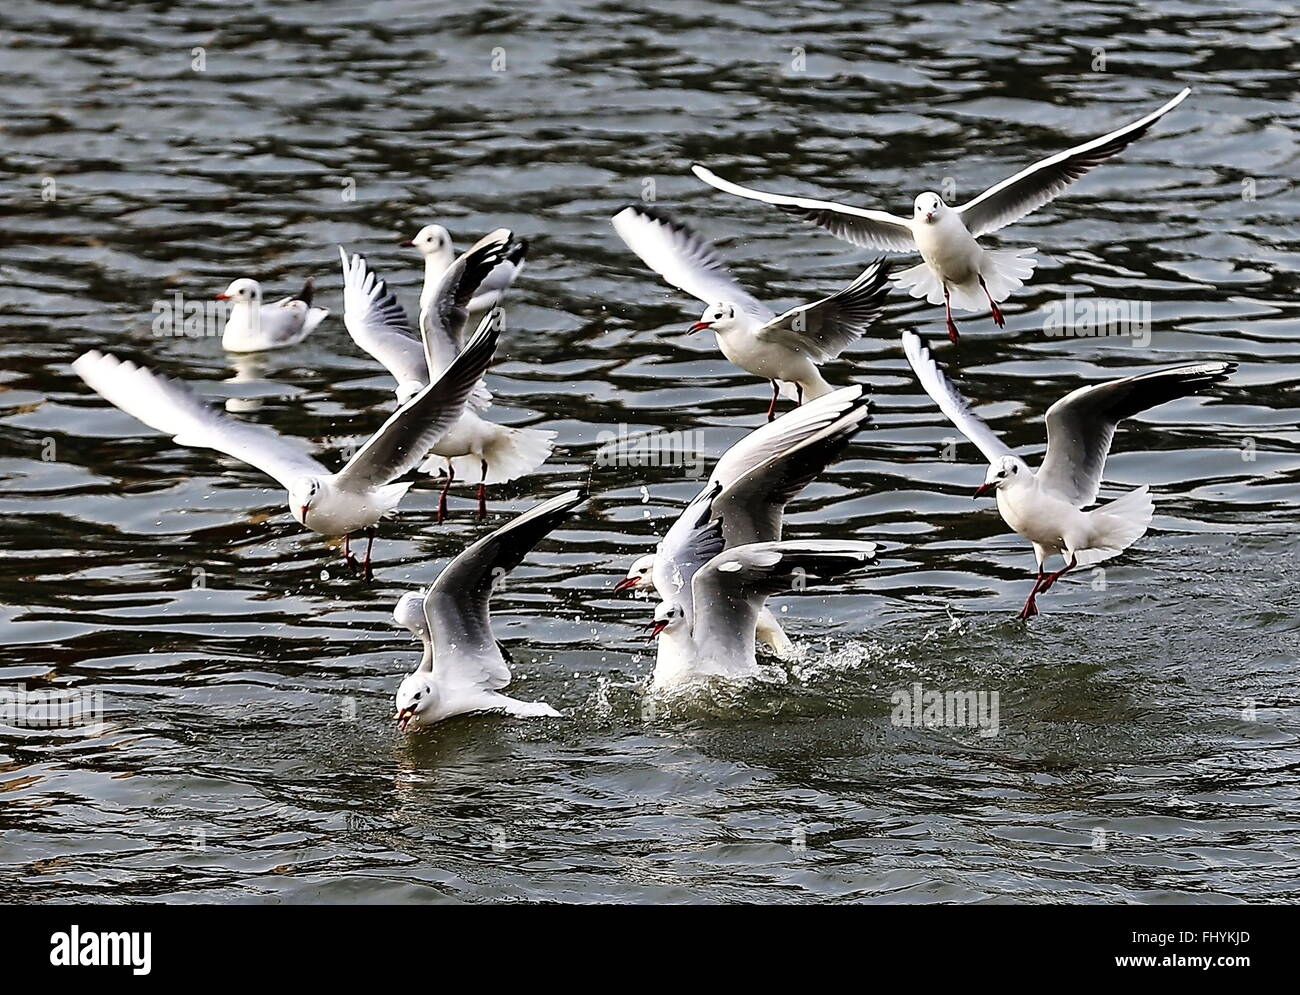 Qinhuangdao, China's Hebei Province. 26th Feb, 2016. Seagulls scramble for food at the estuary of Xinkai River - Stock Image